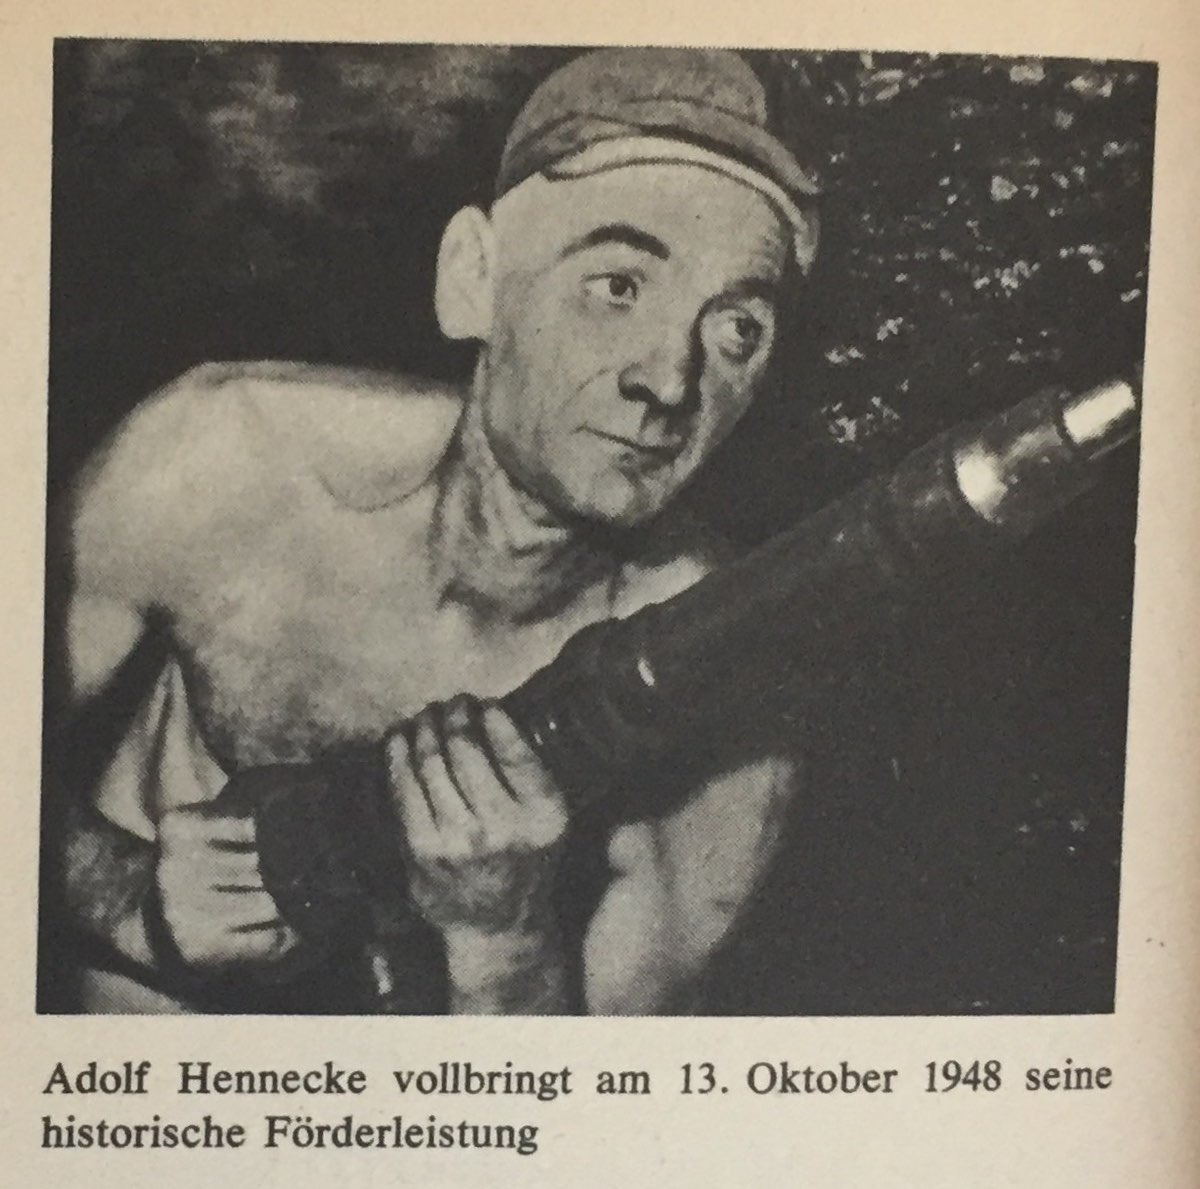 Adolf Hennecke